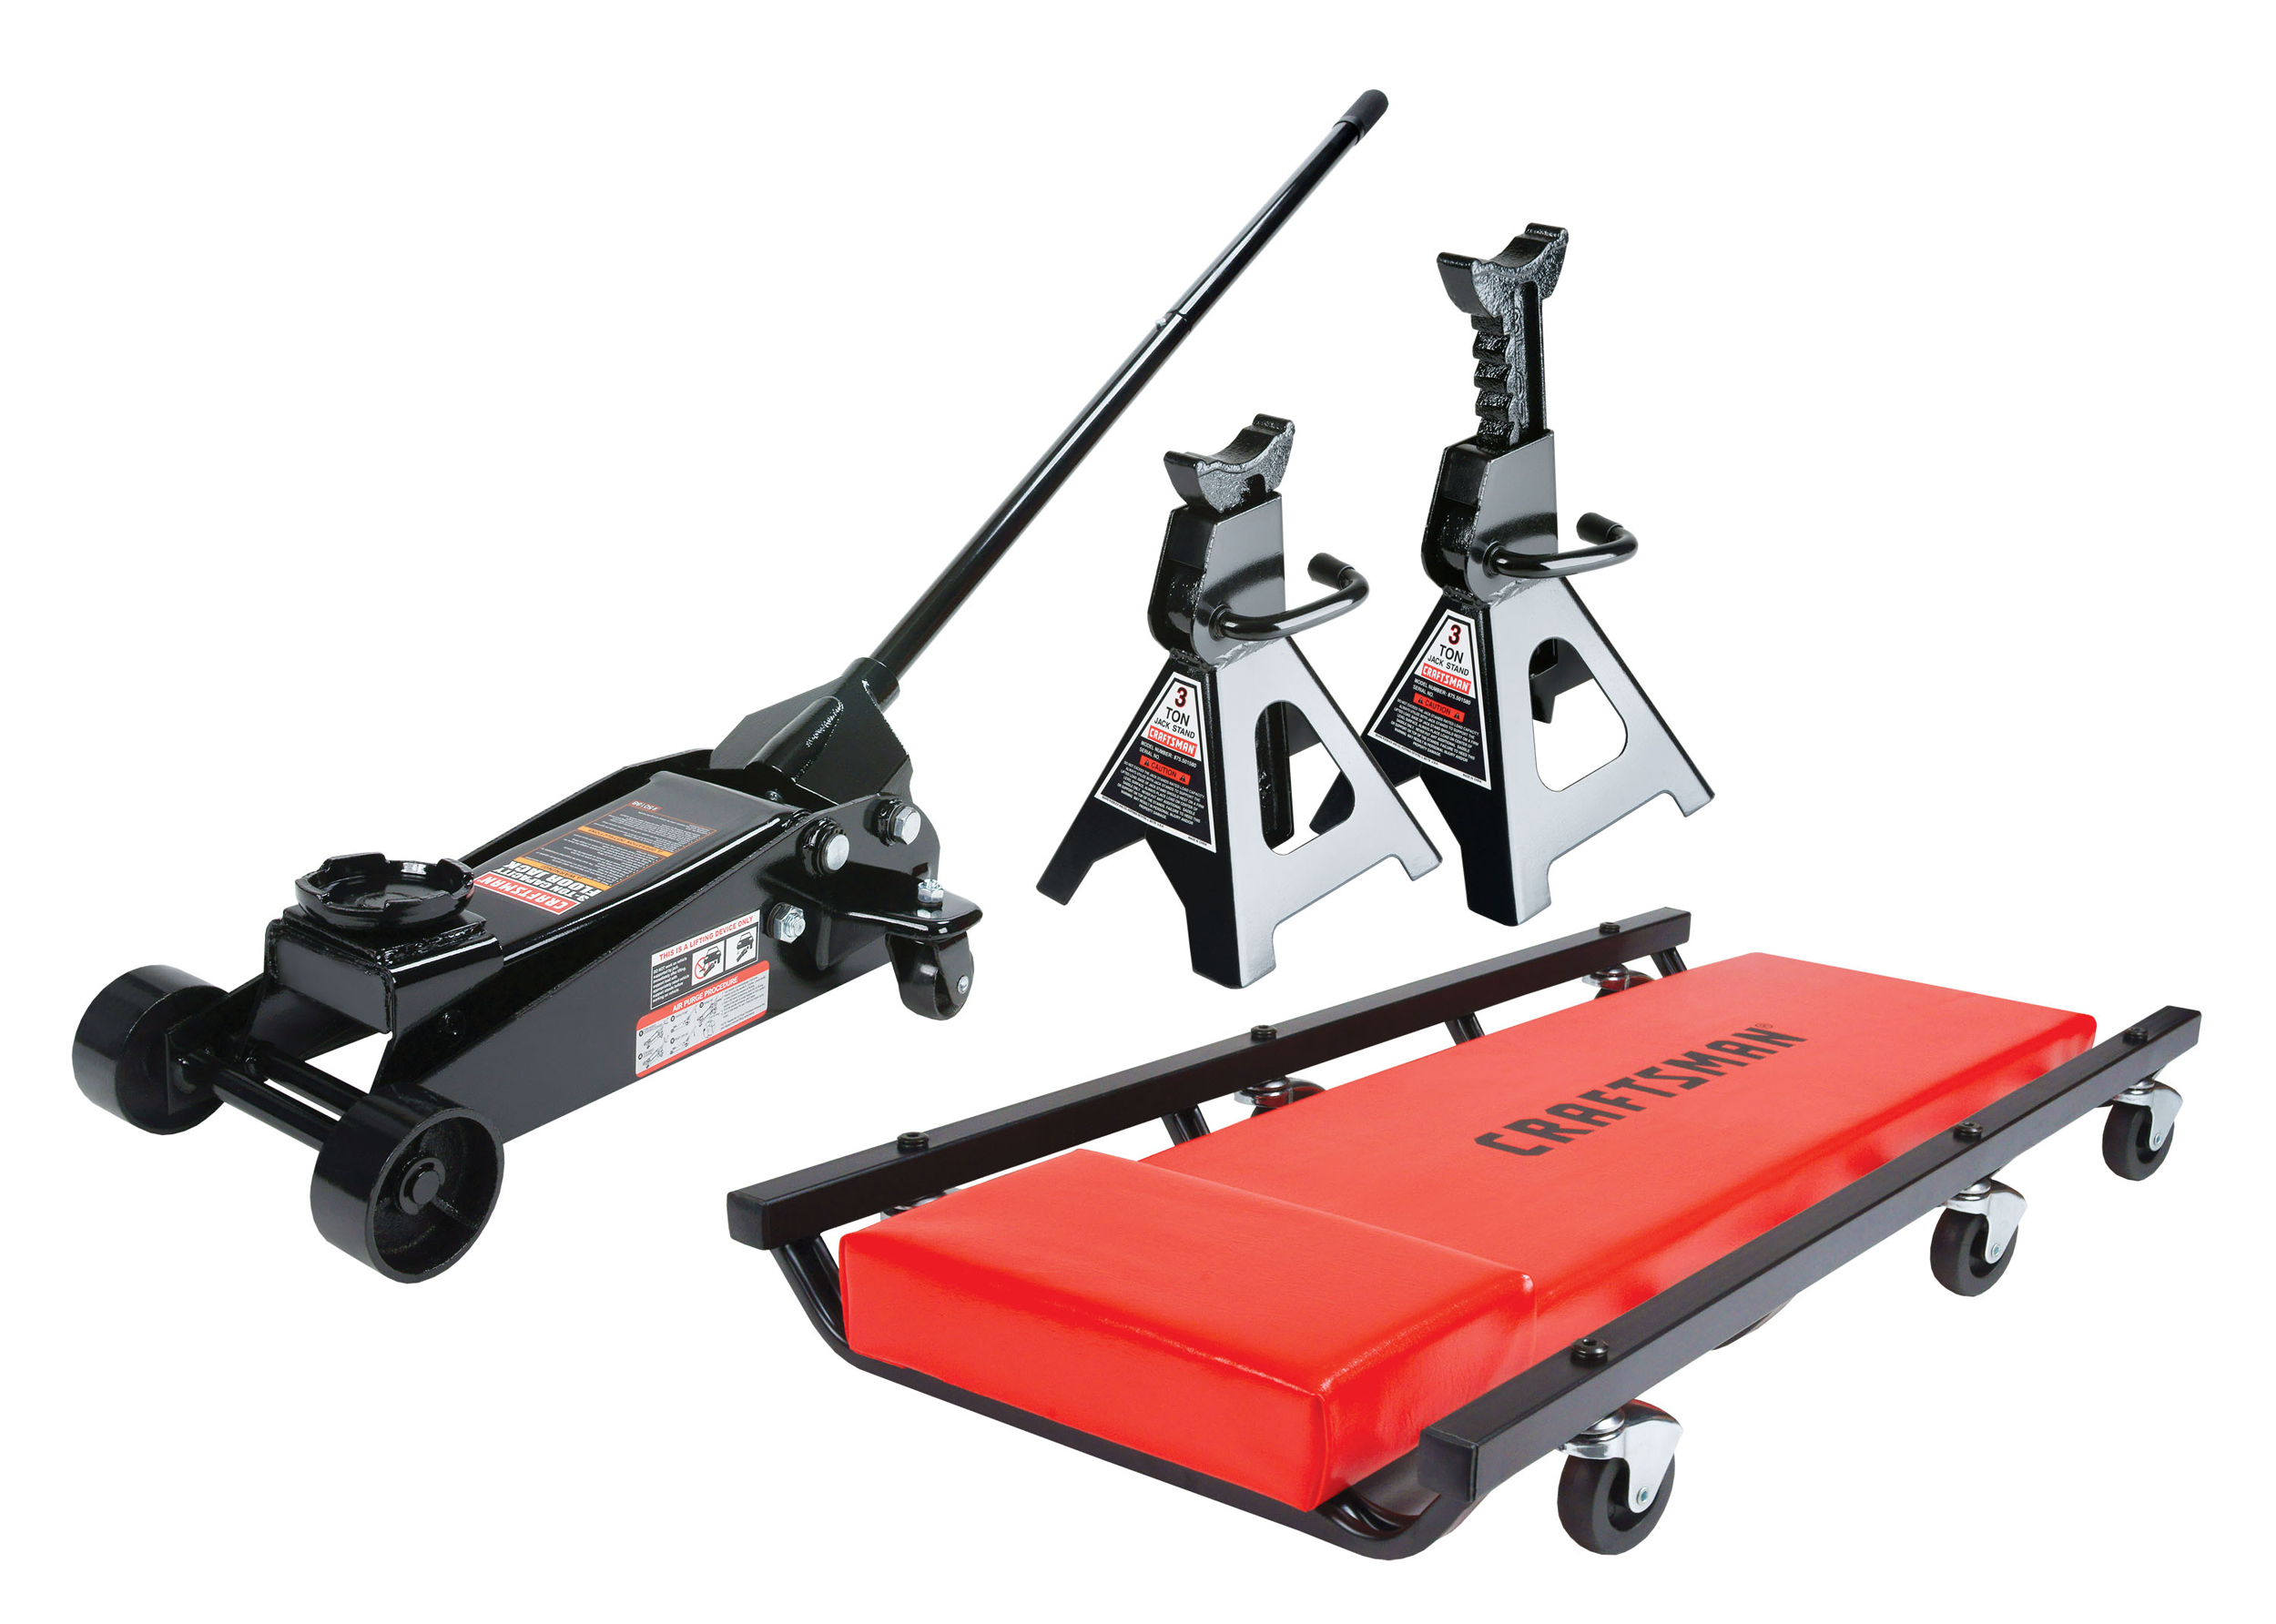 Sears Hydraulic Floor Jack